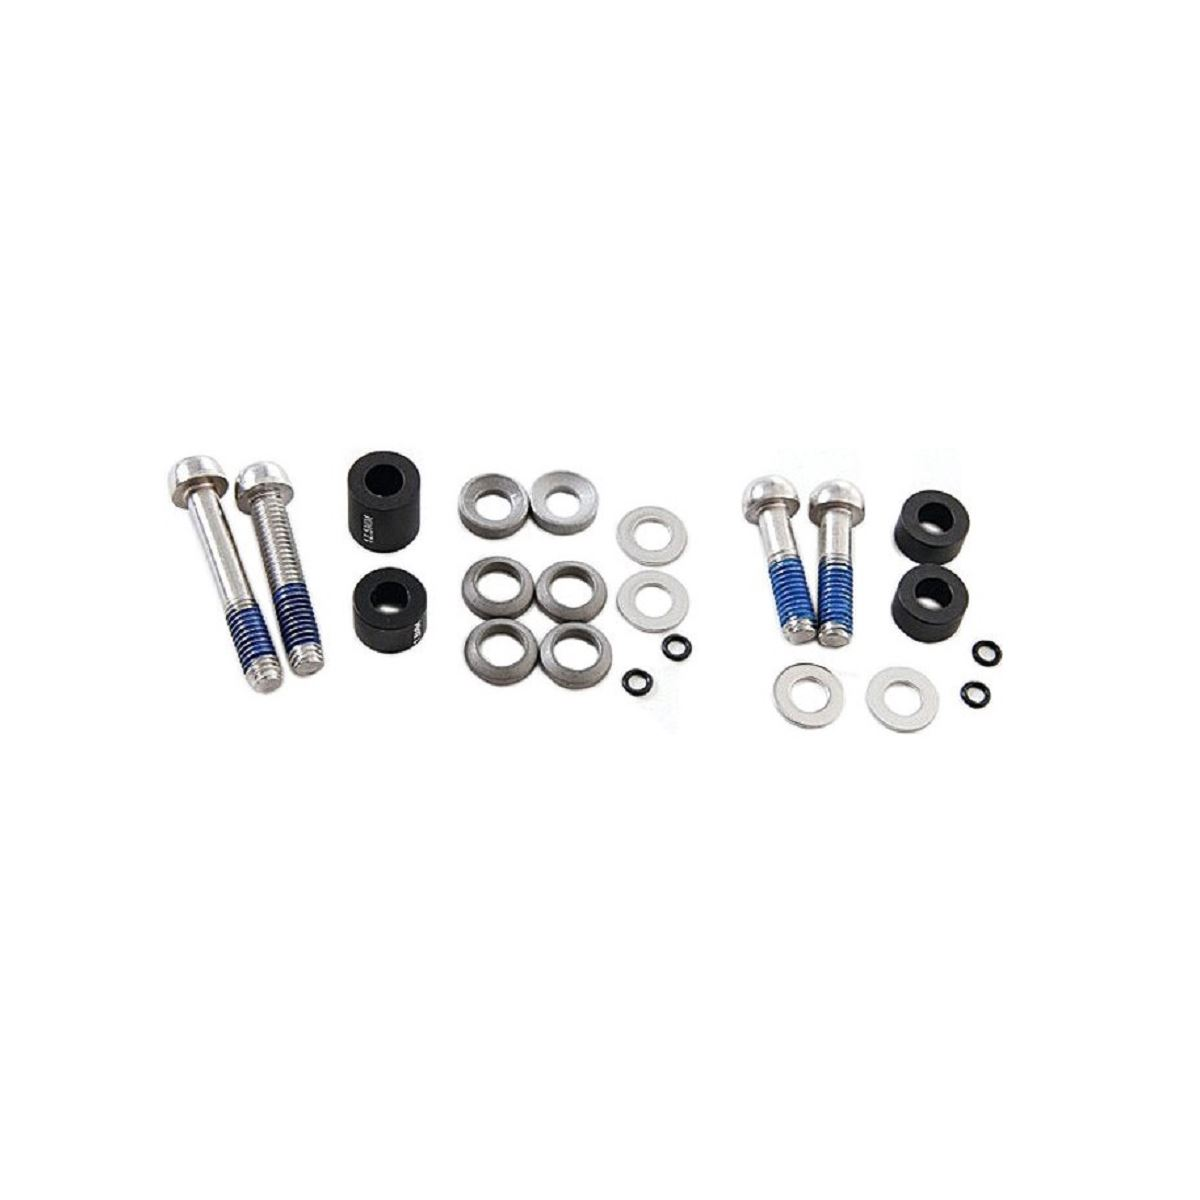 Avid 20mm Disc Post Spacer Kit with Titanium CPS Bolts